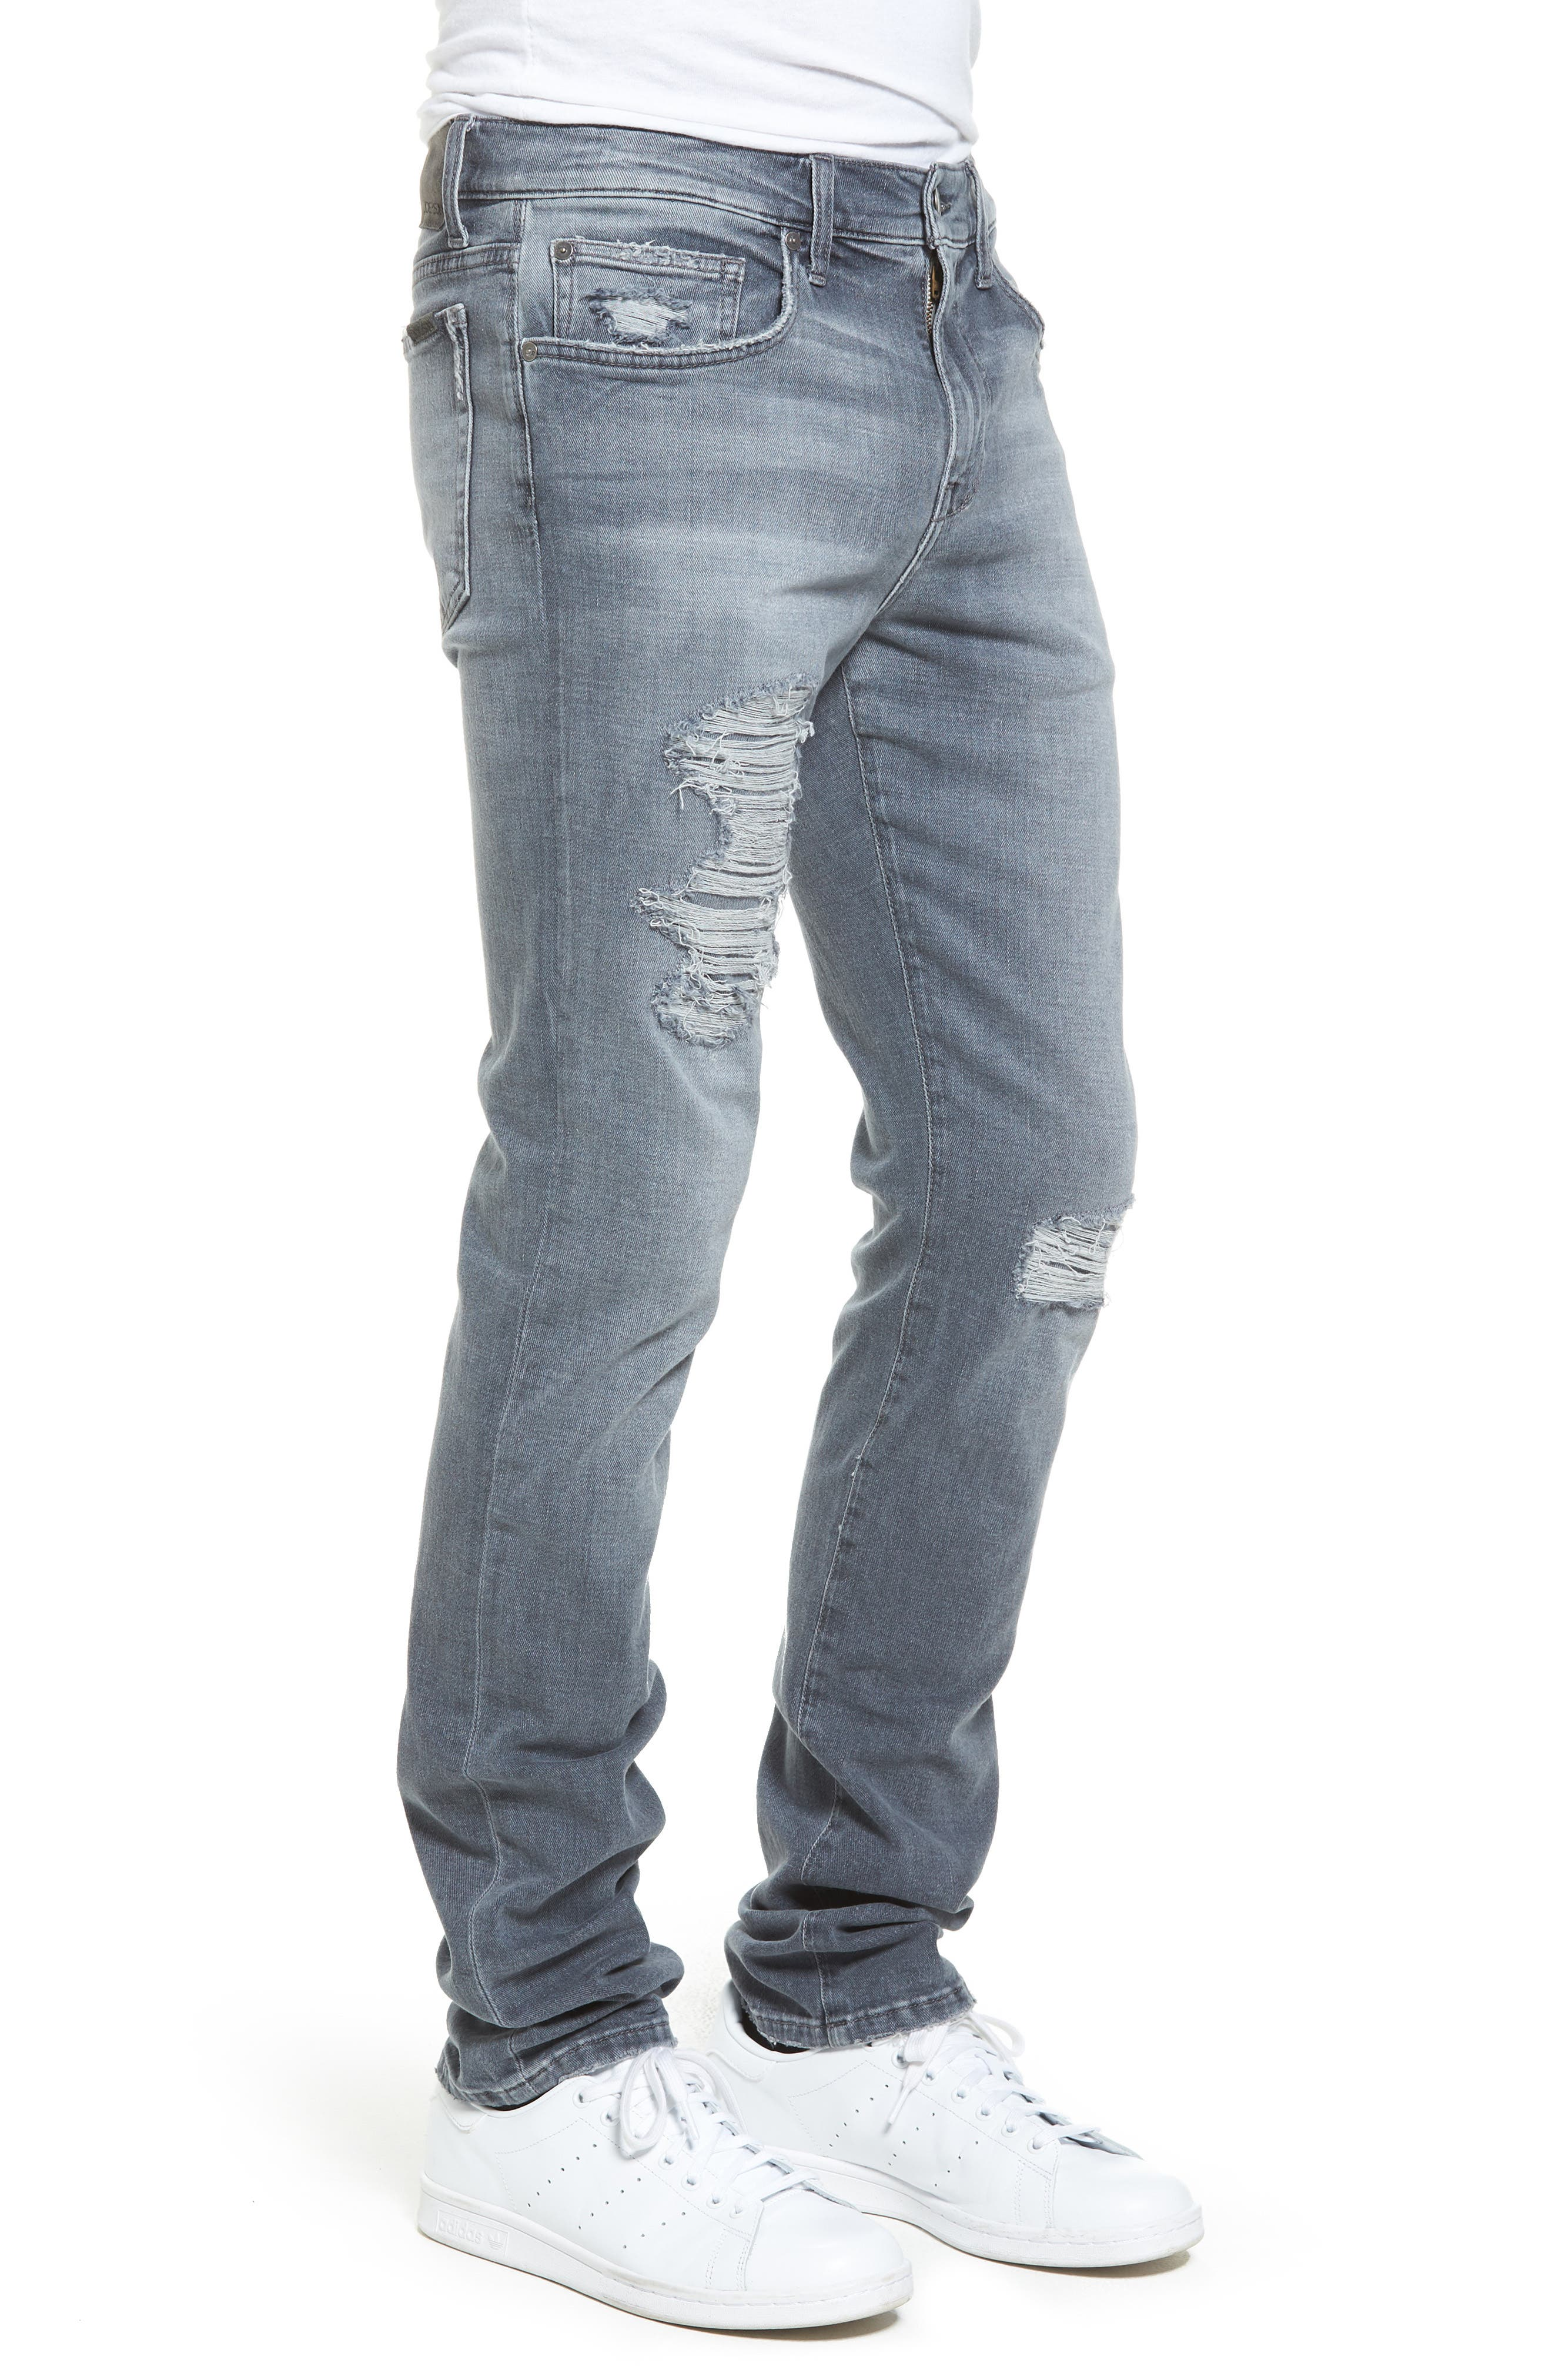 Brixton Distressed Slim Straight Fit Jeans,                             Alternate thumbnail 3, color,                             051